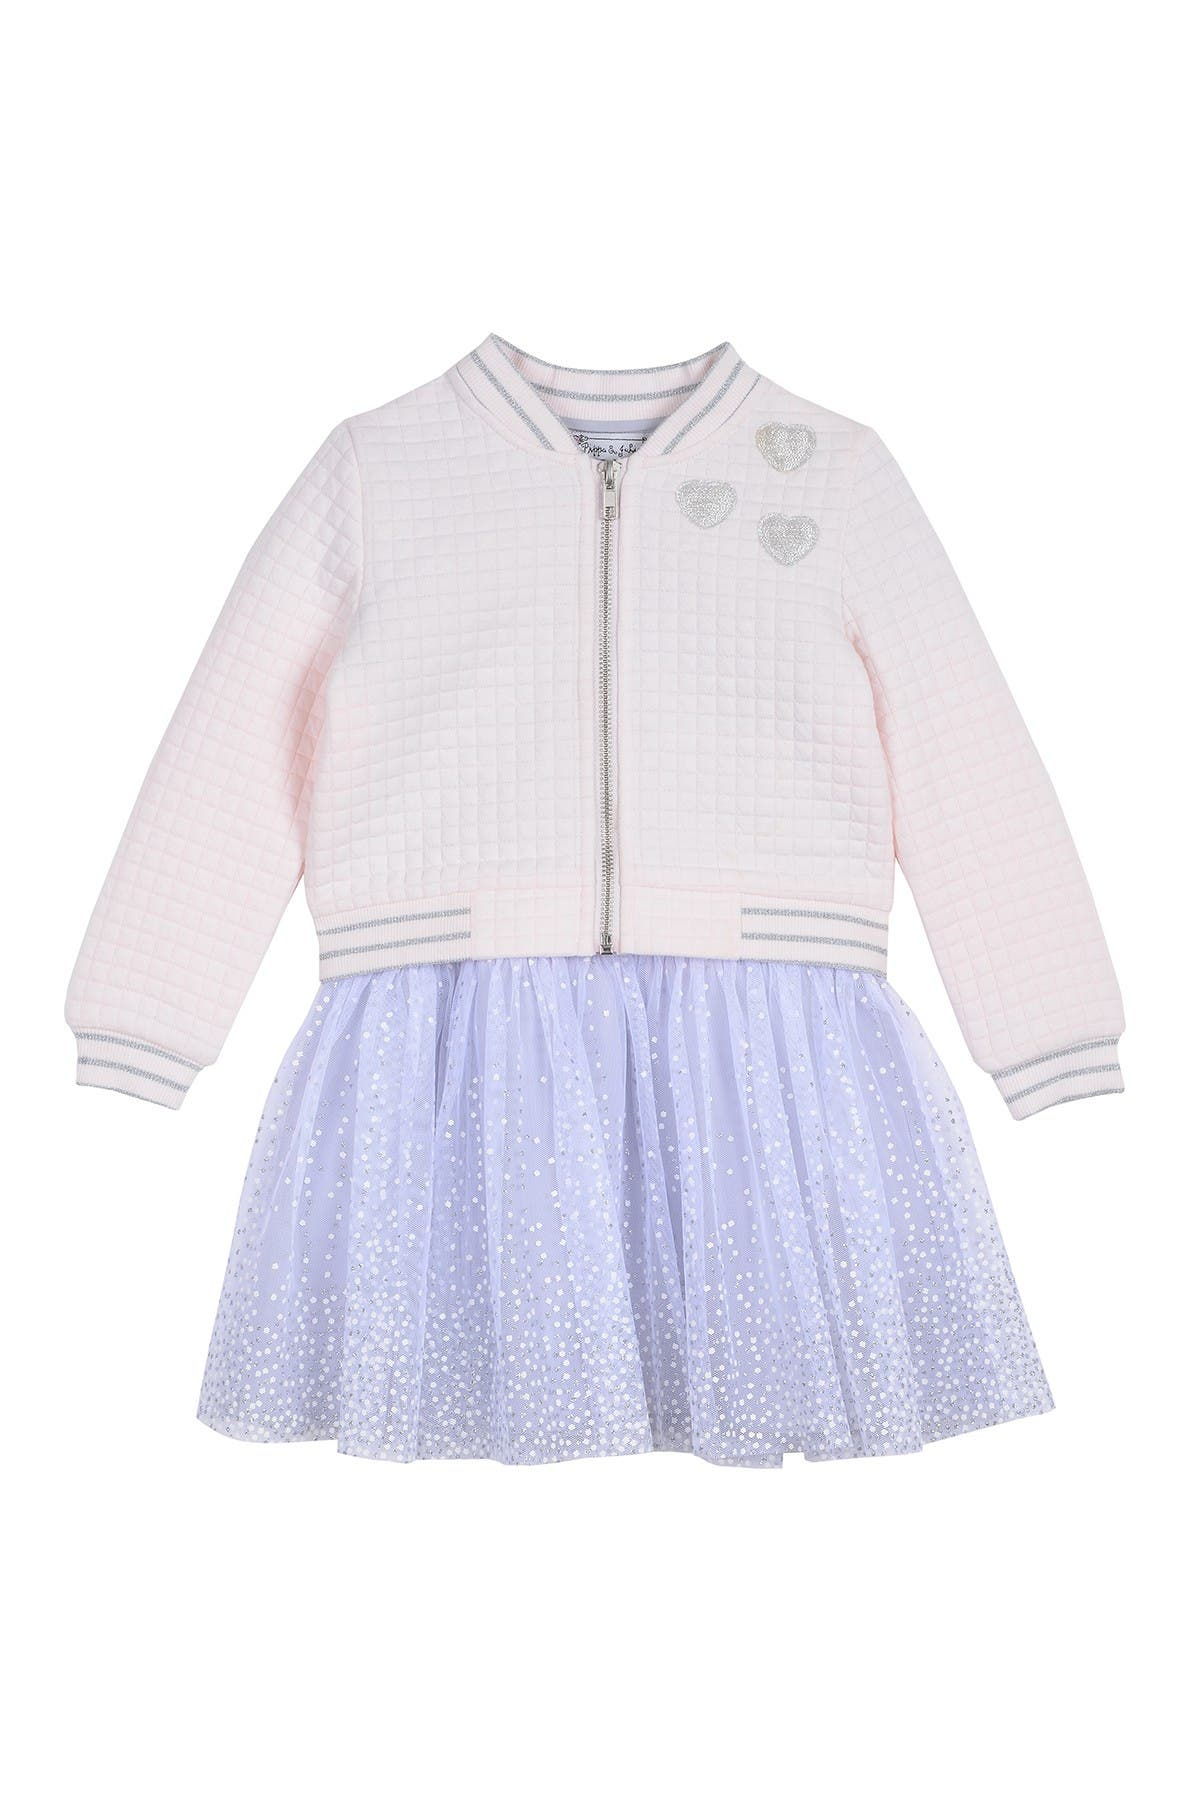 Image of Pippa & Julie Quilted Bomber Jacket & Dress 2-Piece Set